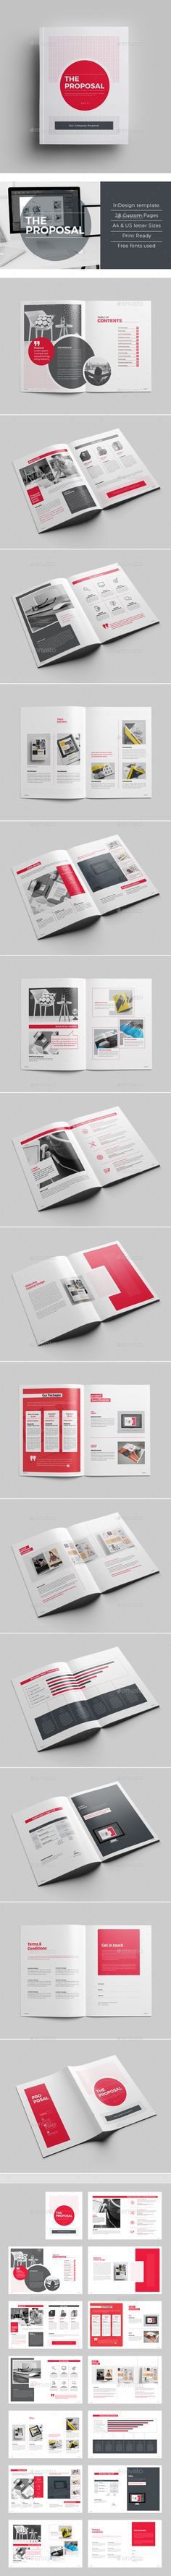 Clean & Professional Proposal Template for Adobe InDesign it comes in International A4 & Us Letter size